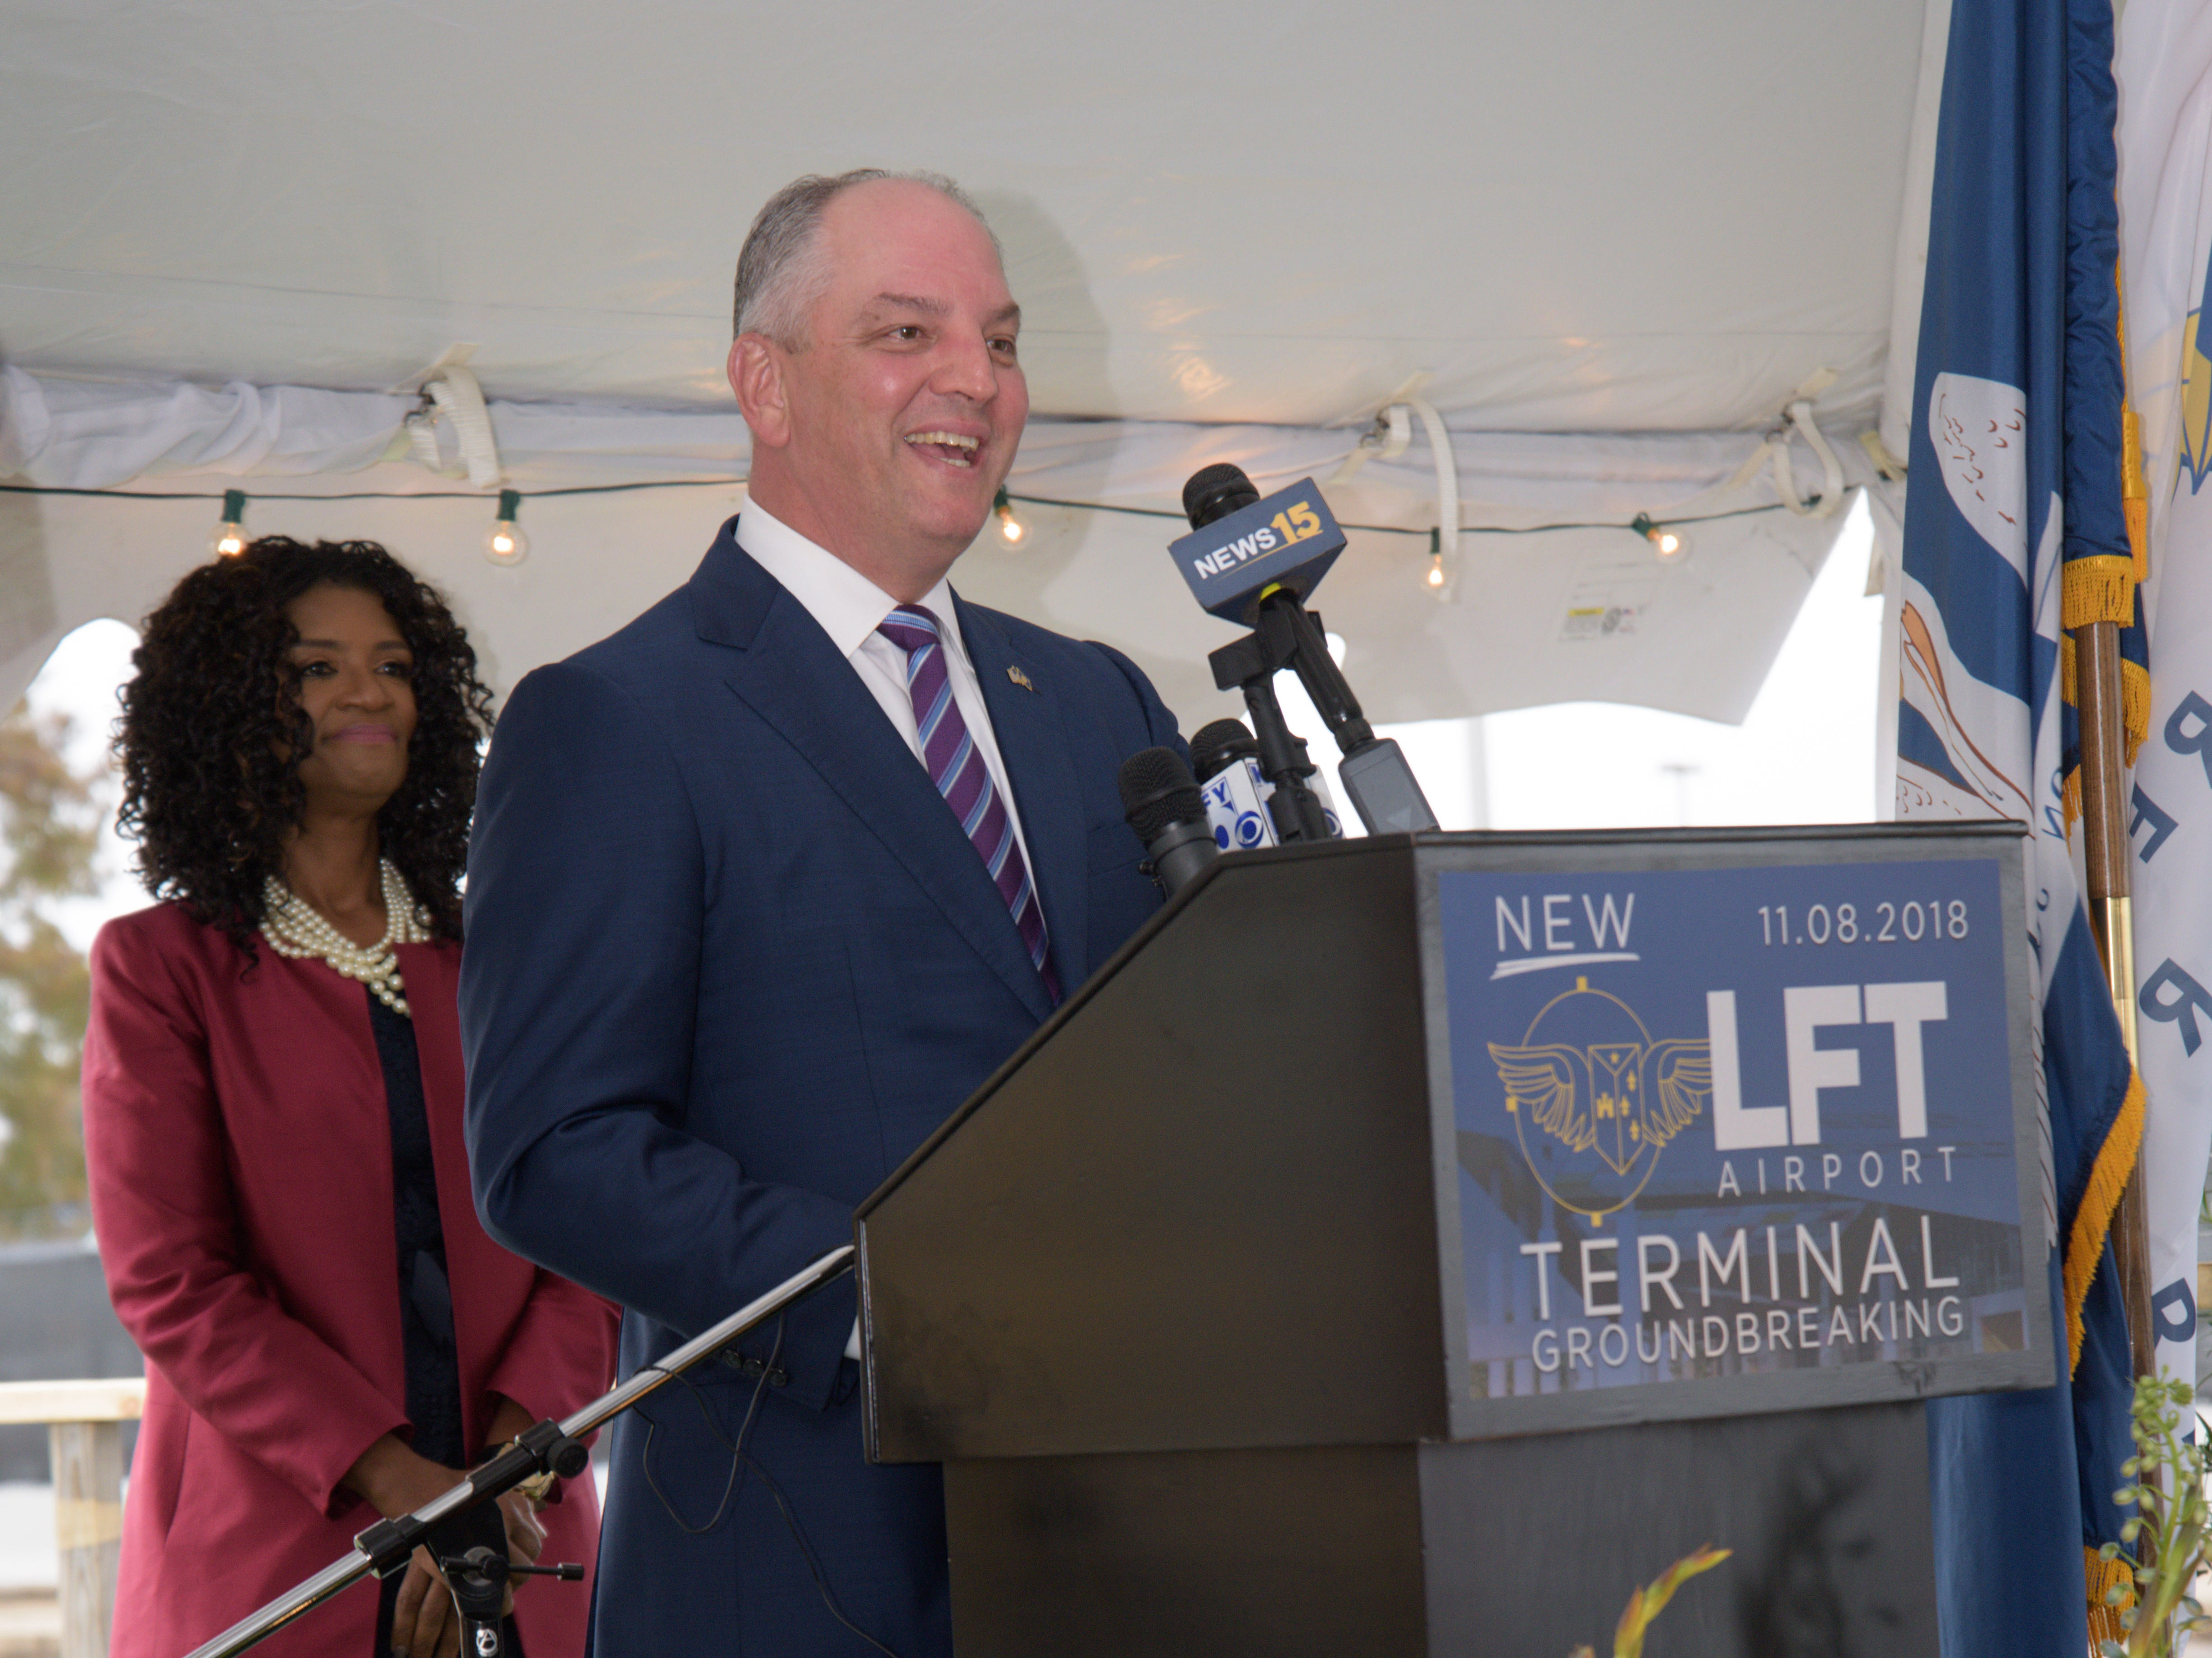 Lafayette Regional Airport hosts a groundbreaking ceremony Thursday, Nov. 8, 2018, to celebrate its upcoming terminal.